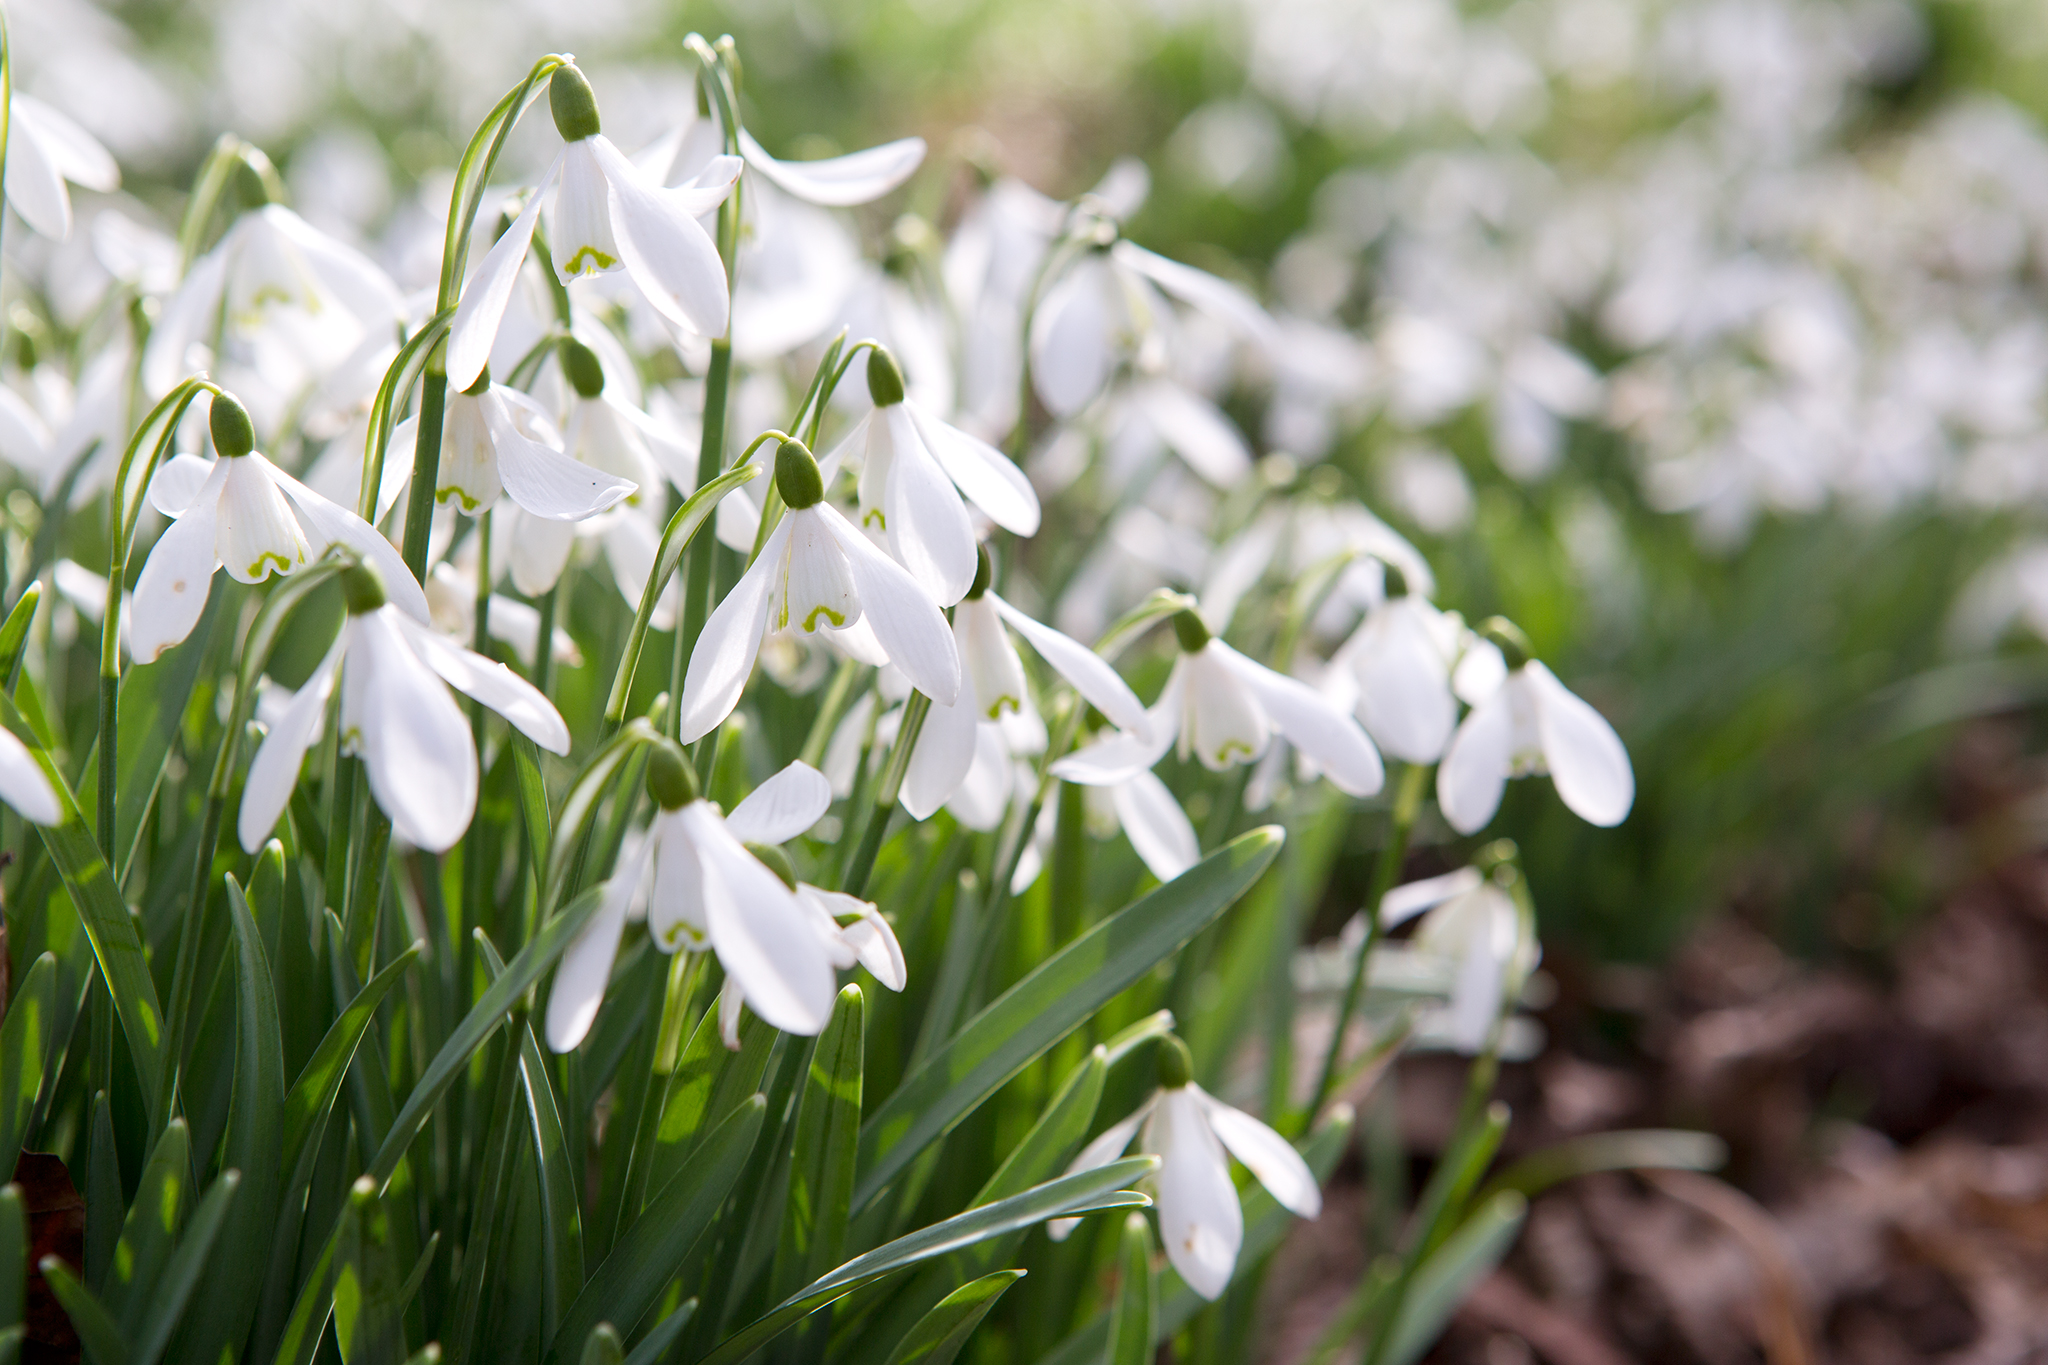 When snowdrops bloom 40